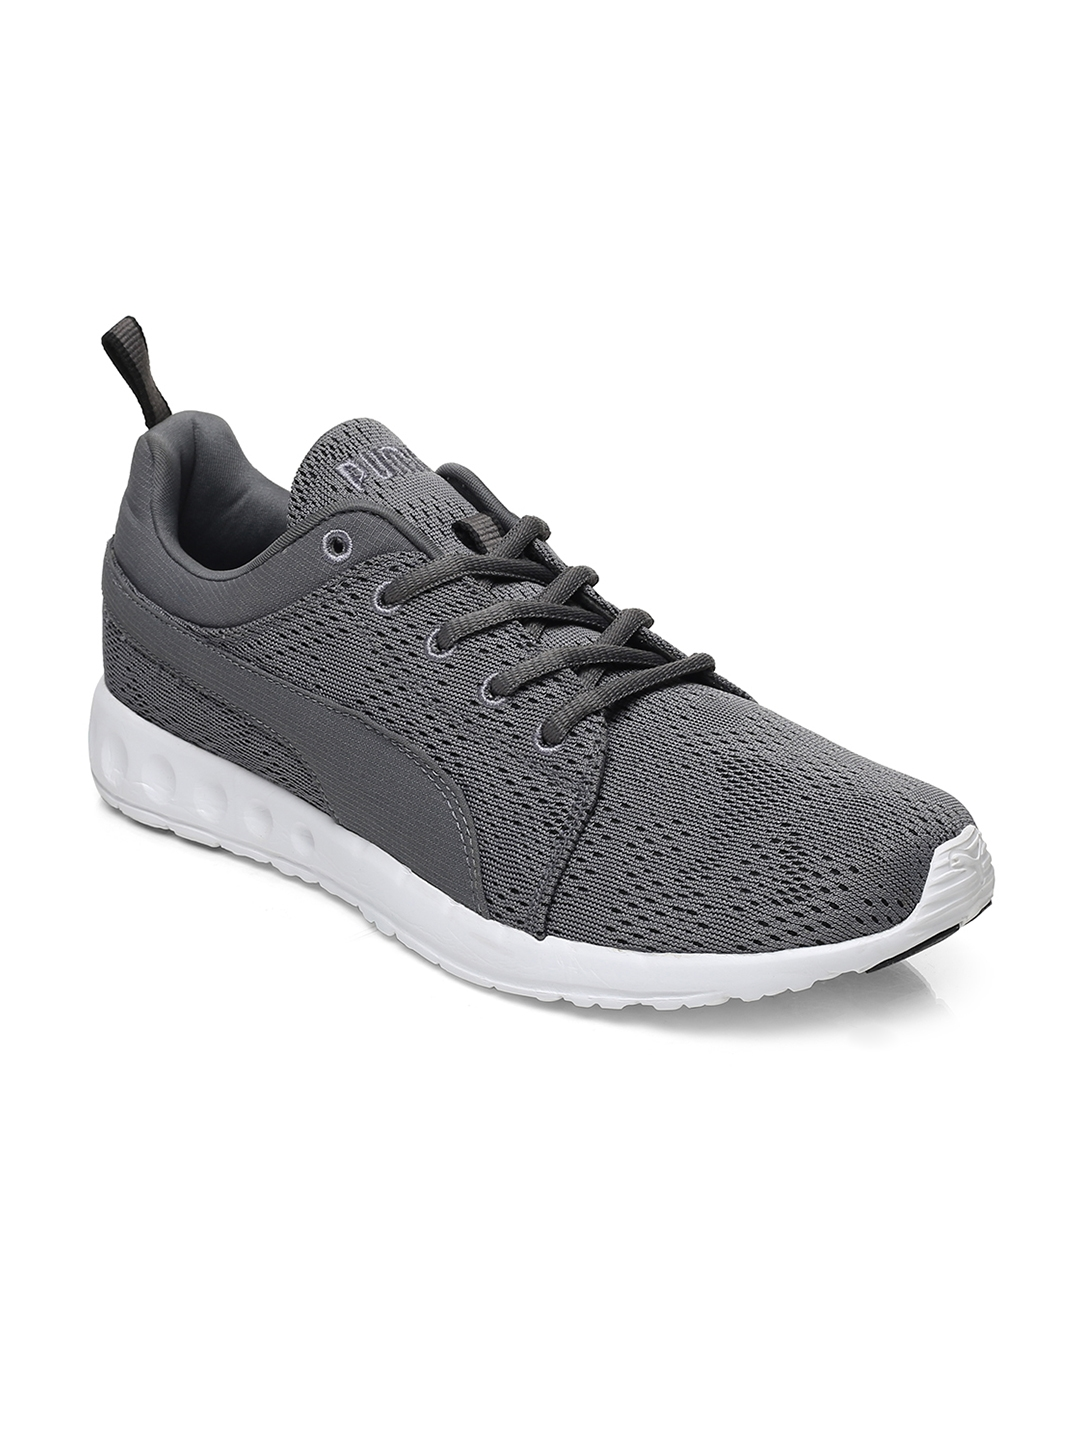 on sale 5a36f b26a4 Buy Puma Men Grey Carson Runner Camo Mesh IDP Running Shoes - Sports ...